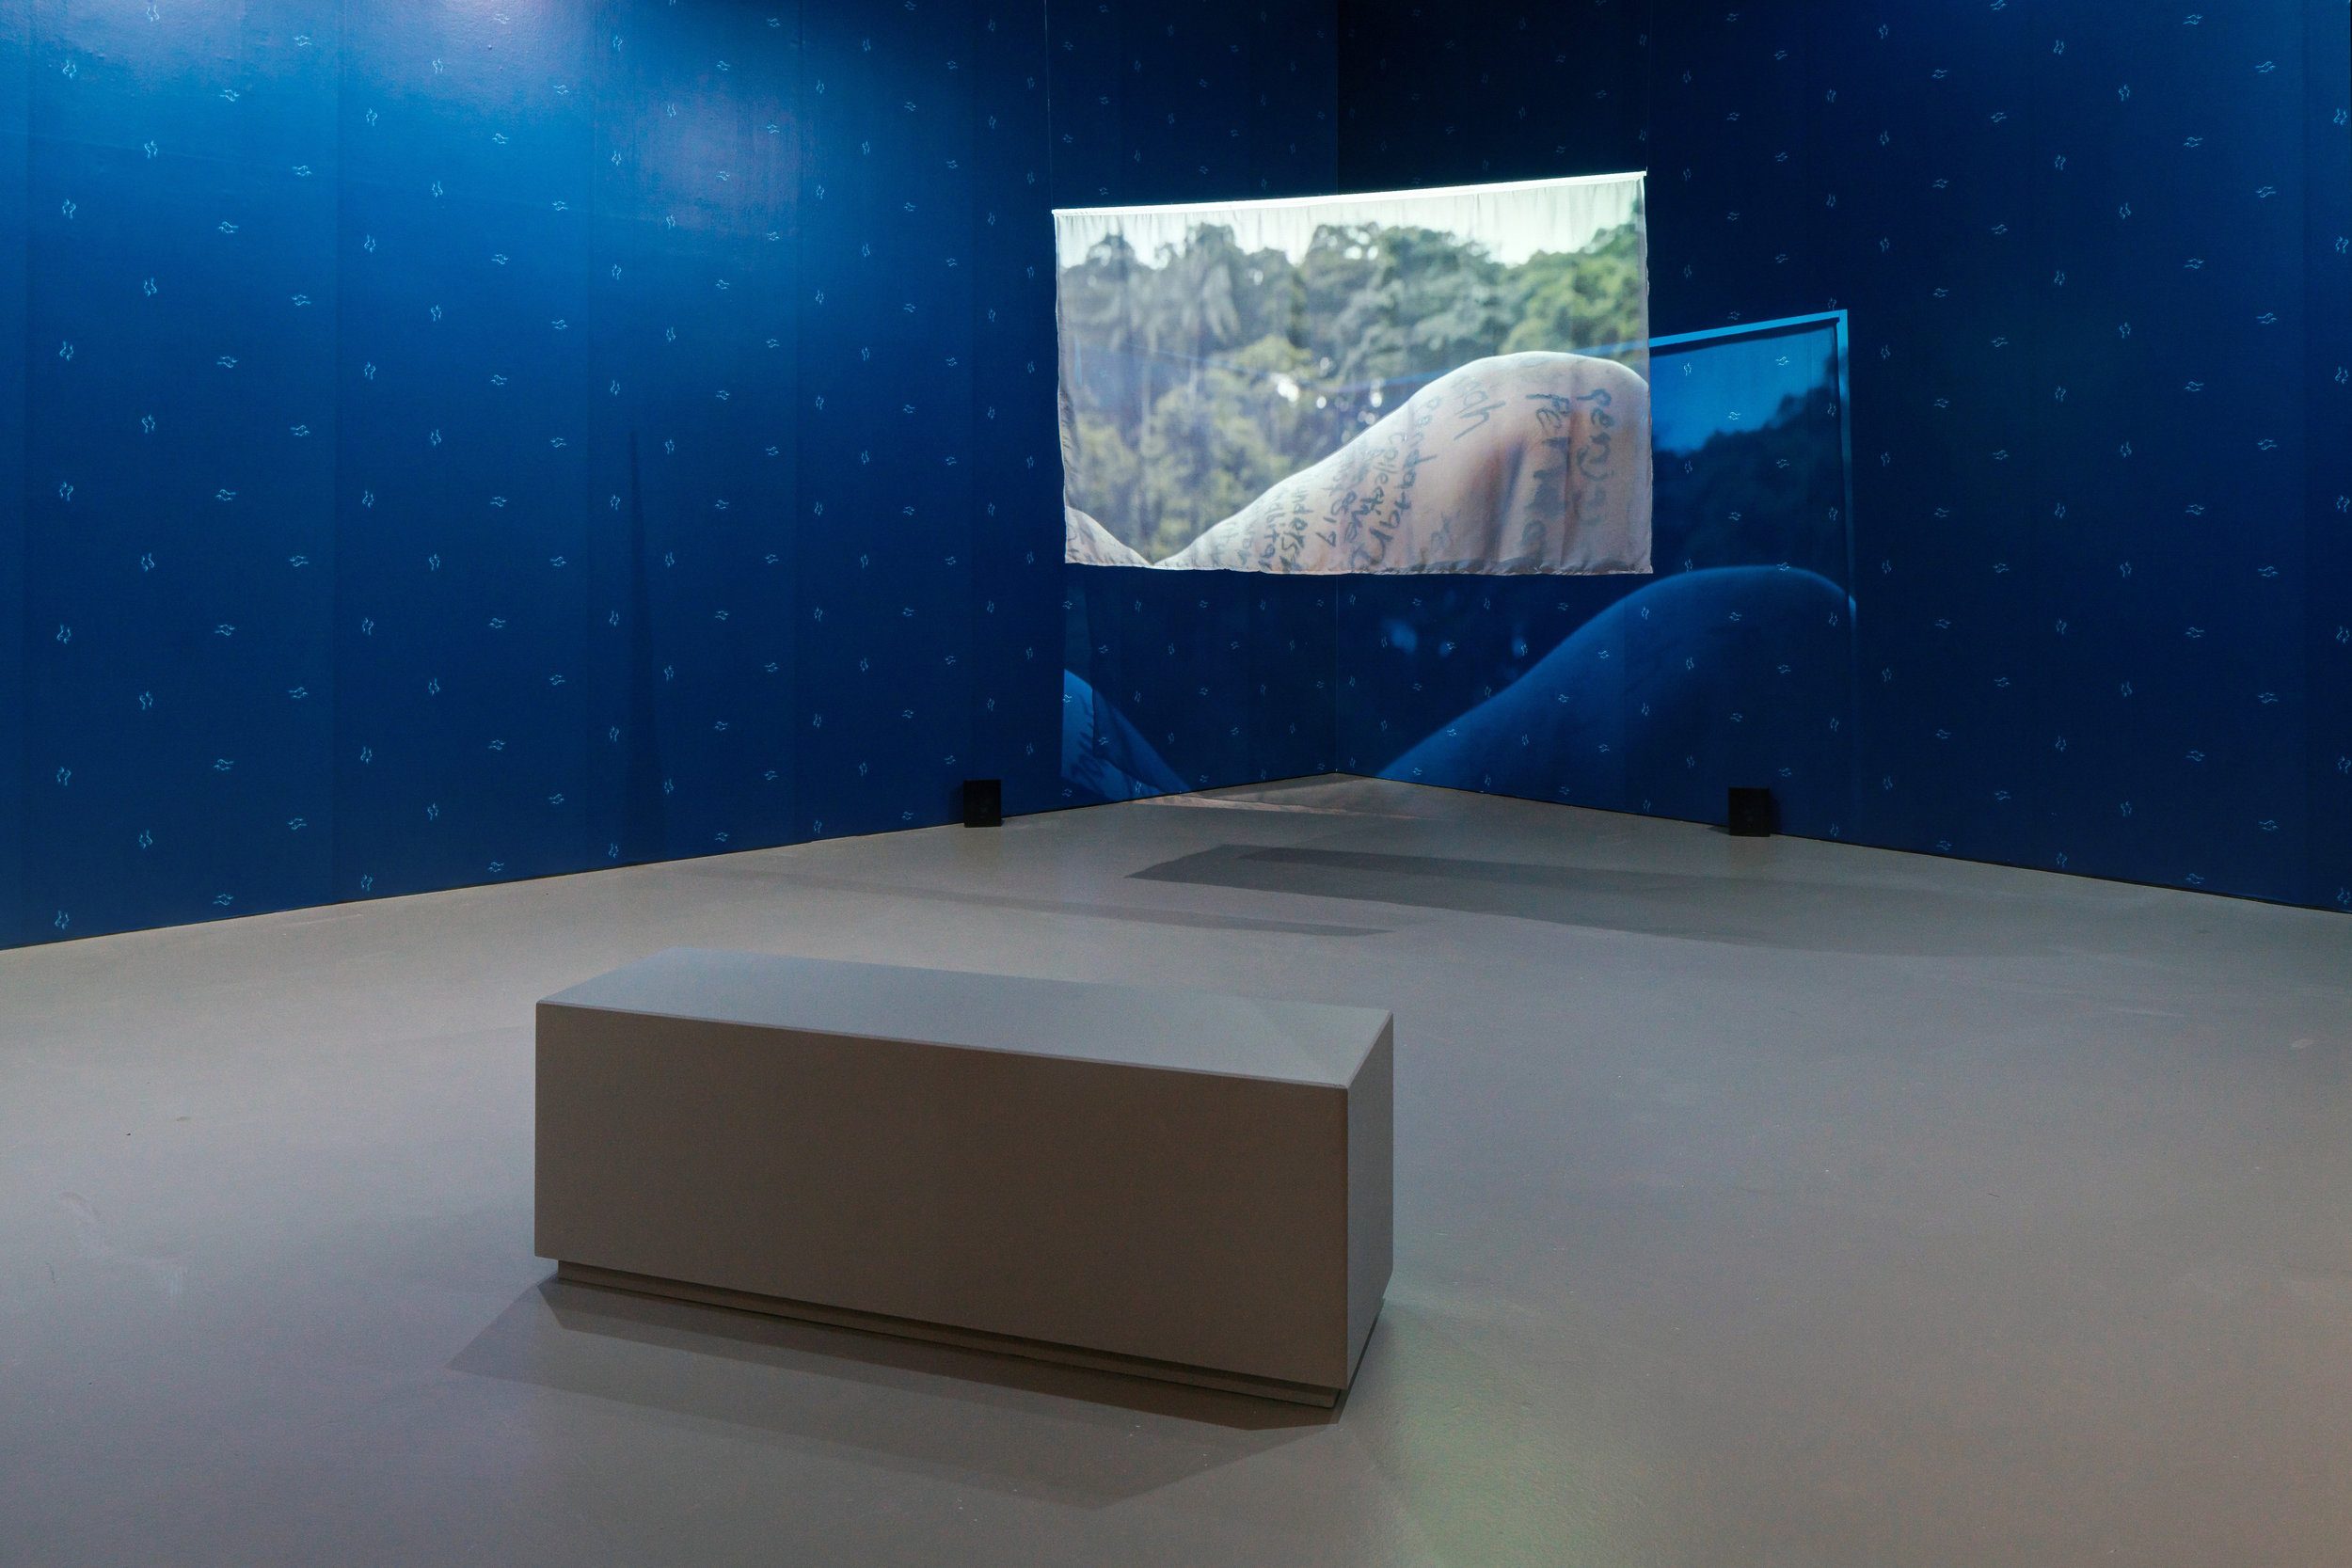 bekas , ila 2019, Installation View at NTU Centre for Contemporary Art Singapore  Credit: NTU Centre for Contemporary Art Singapore